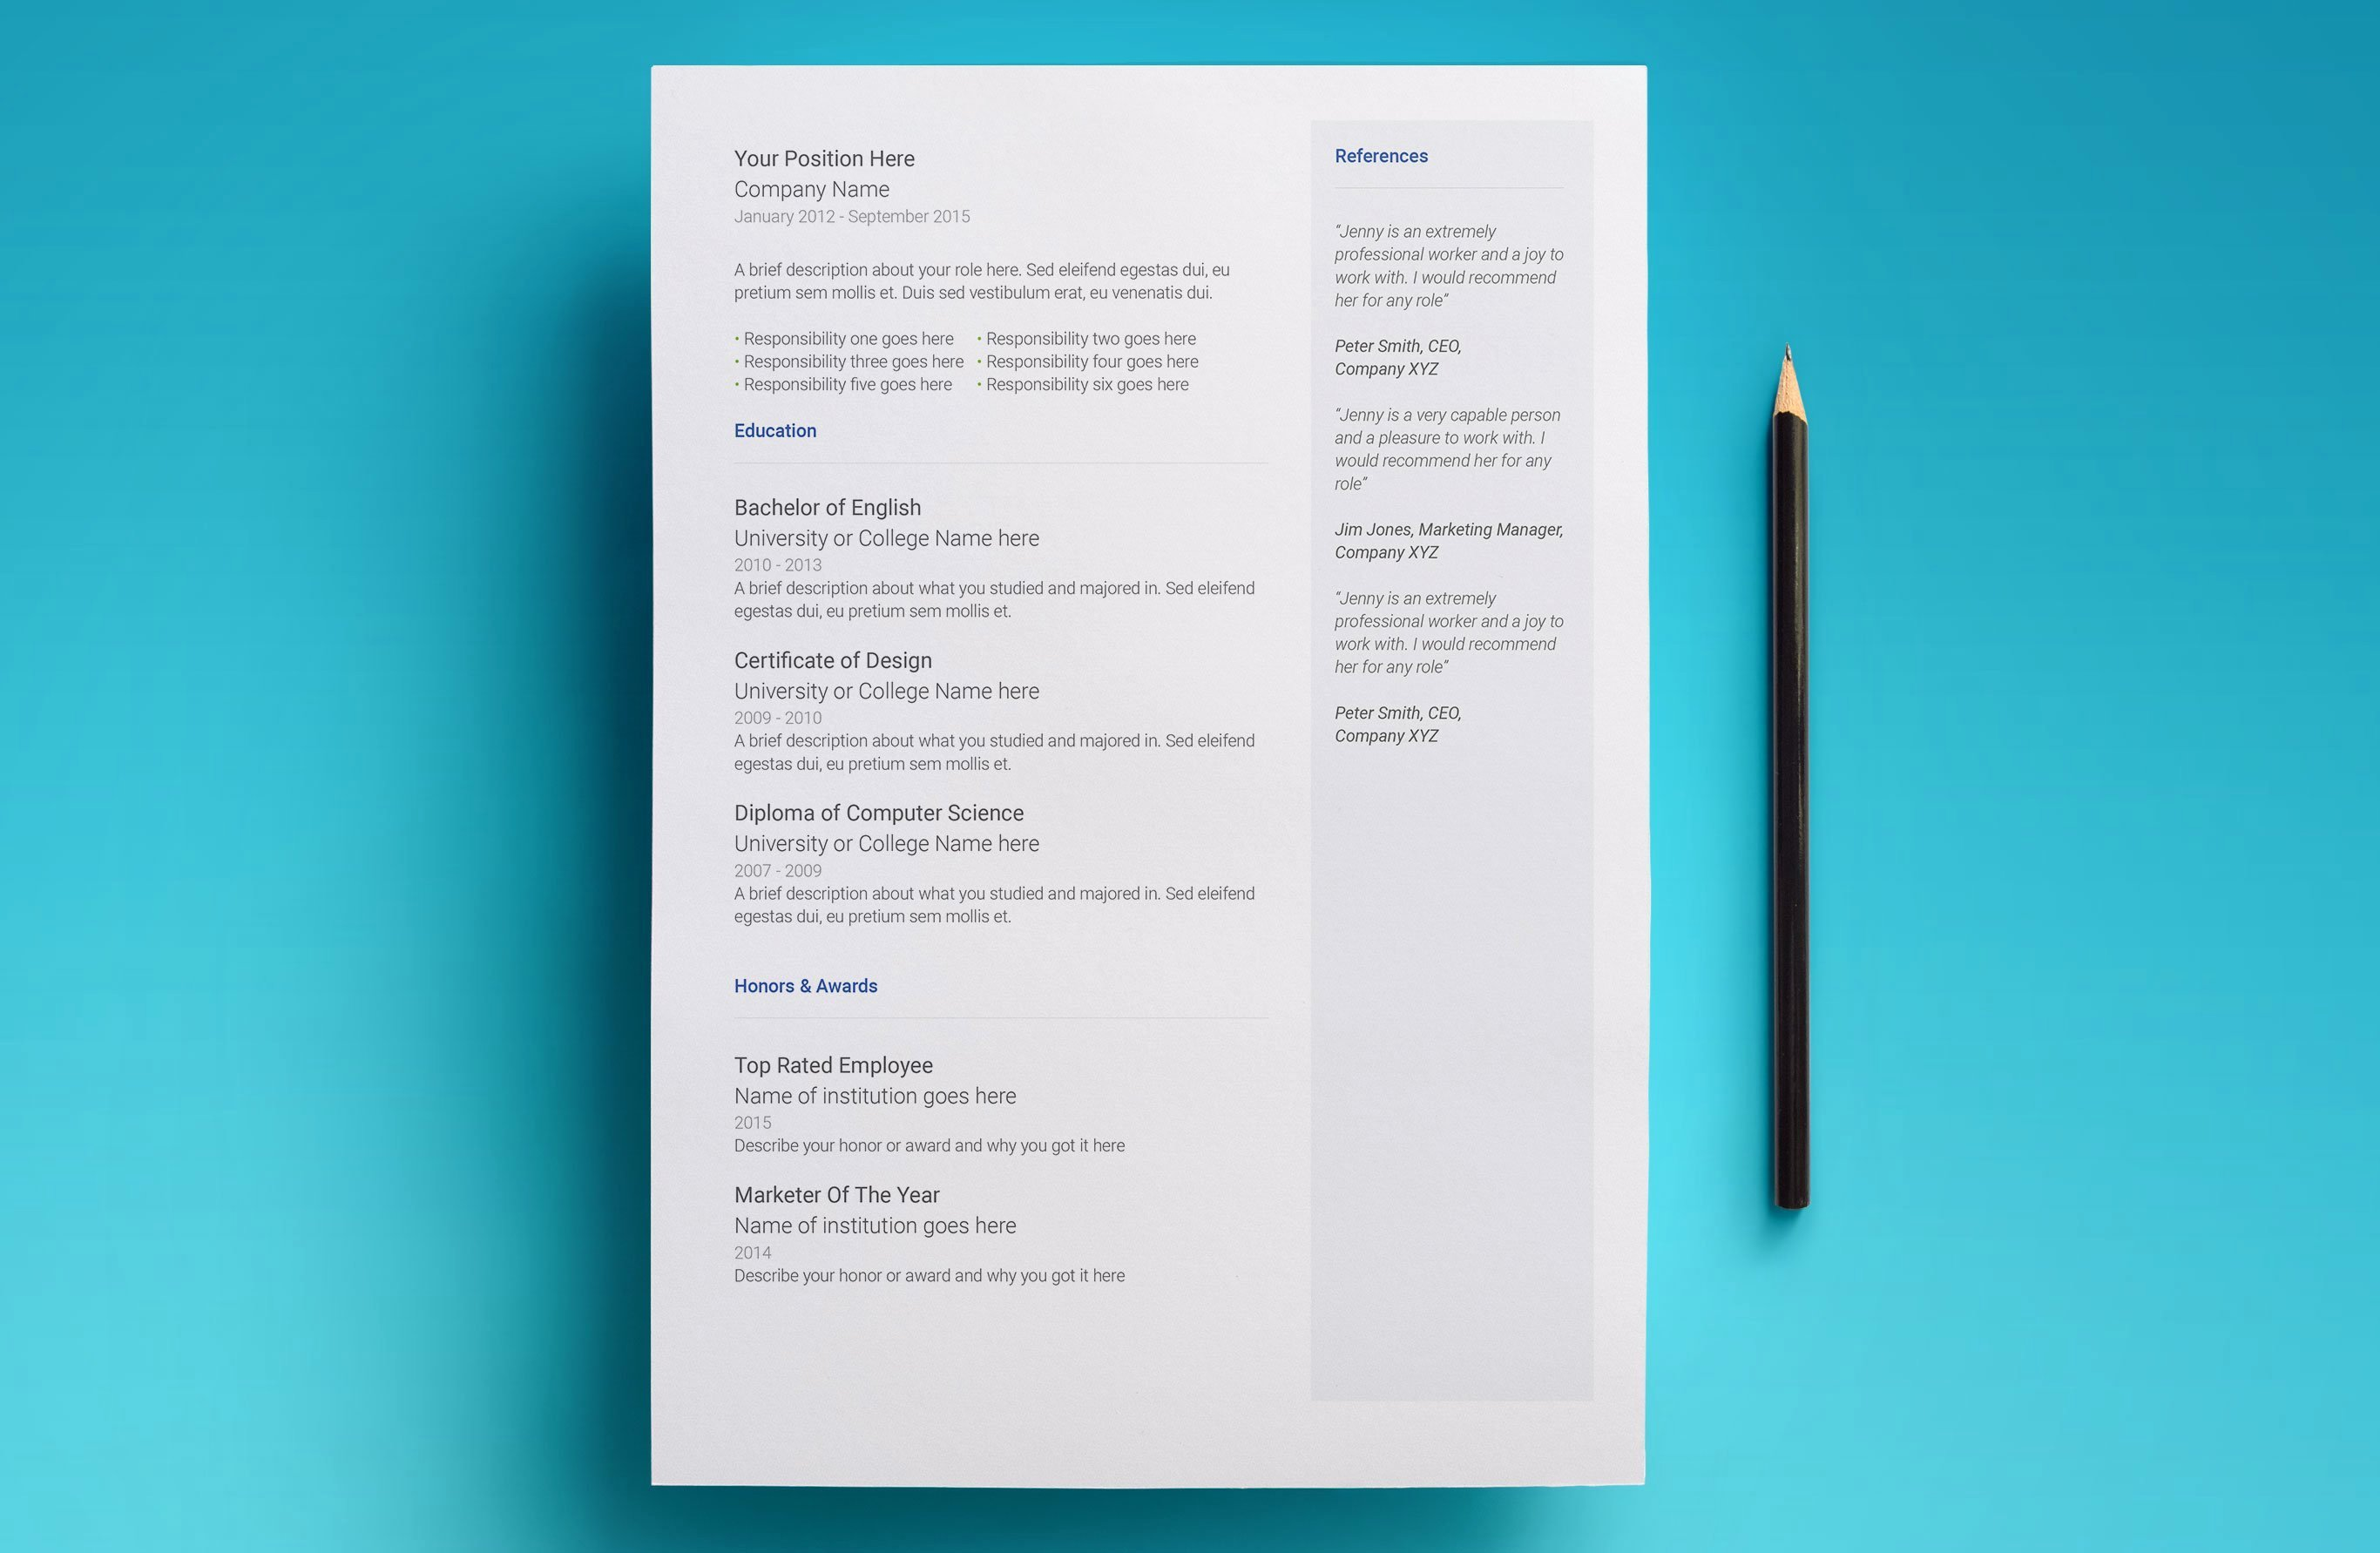 Picture Book Template Google Docs New Free Google Docs Resume Template Download & Use now